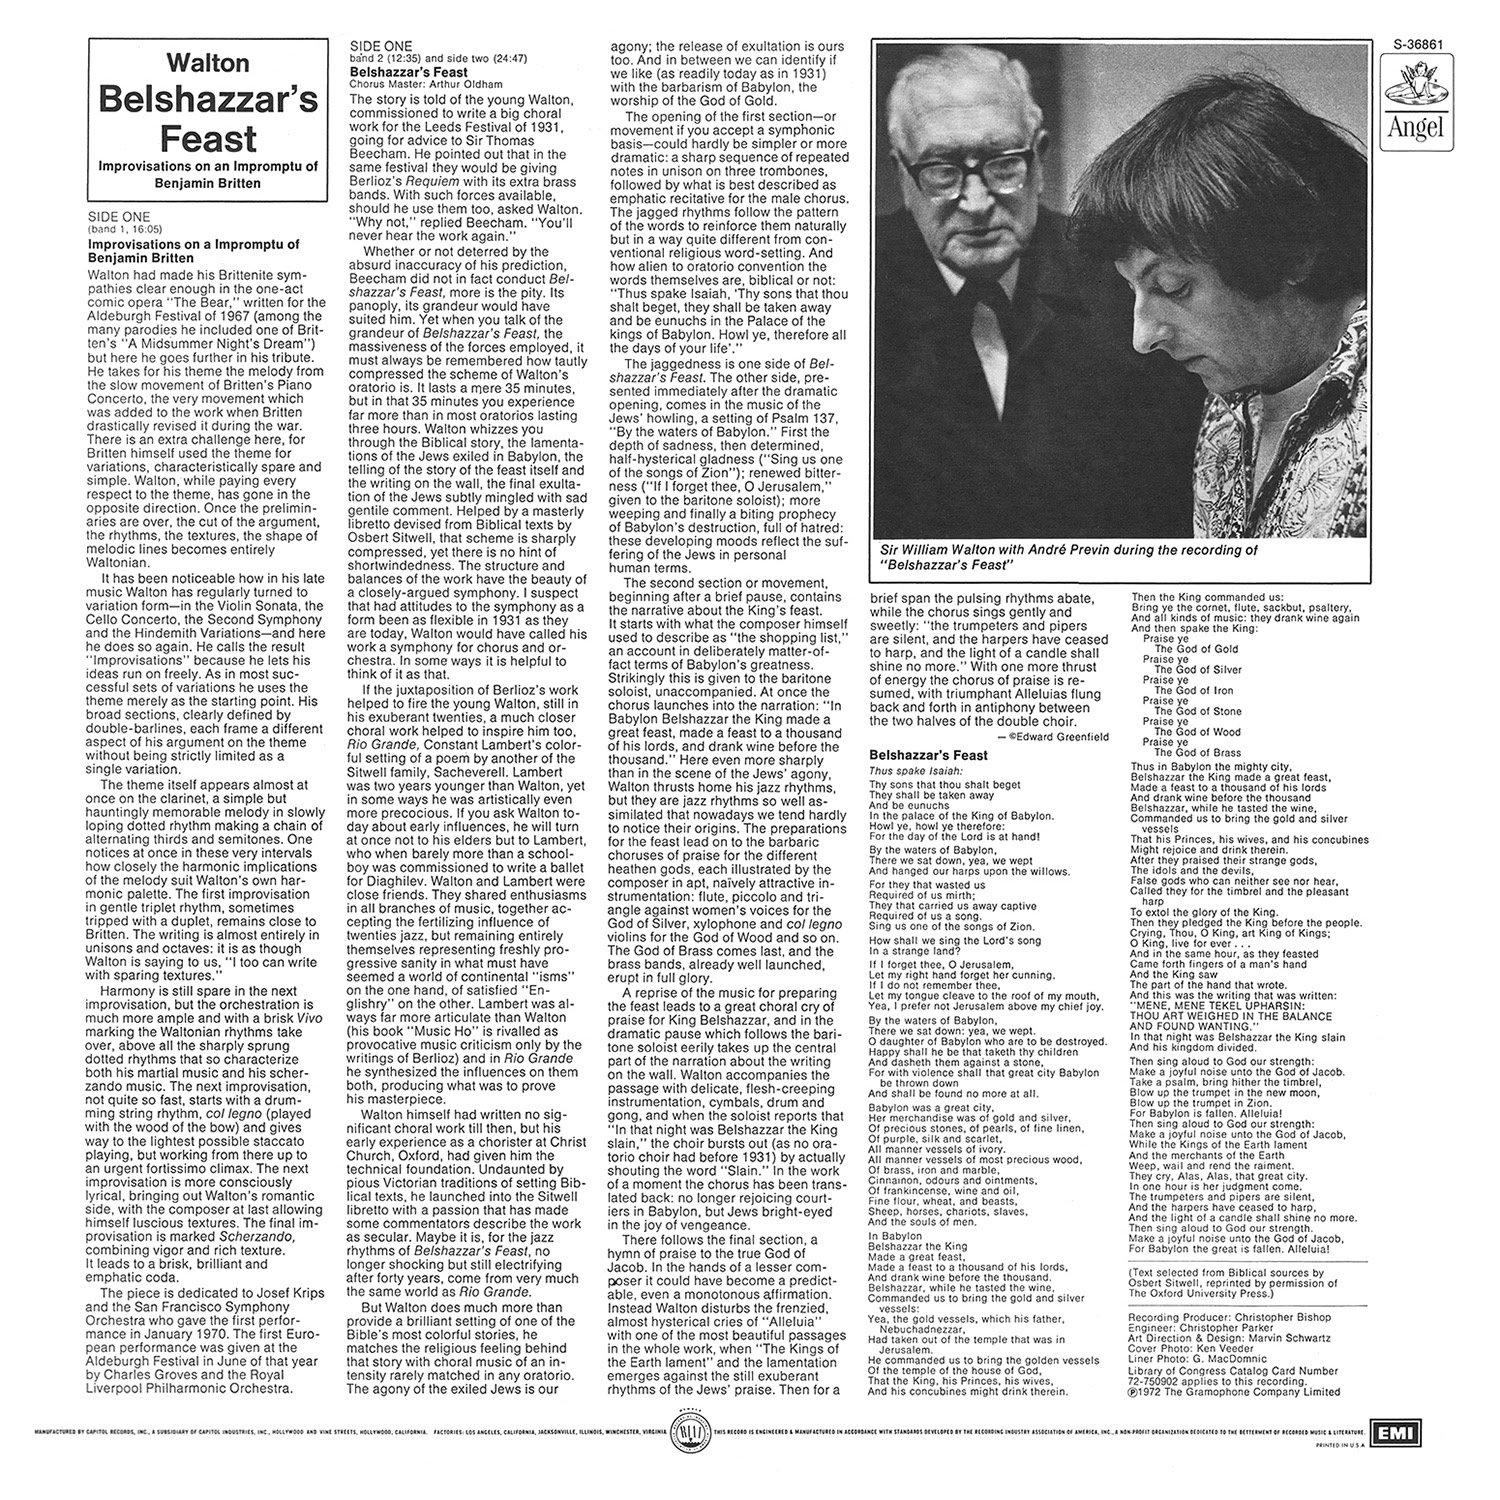 André Previn, William Walton